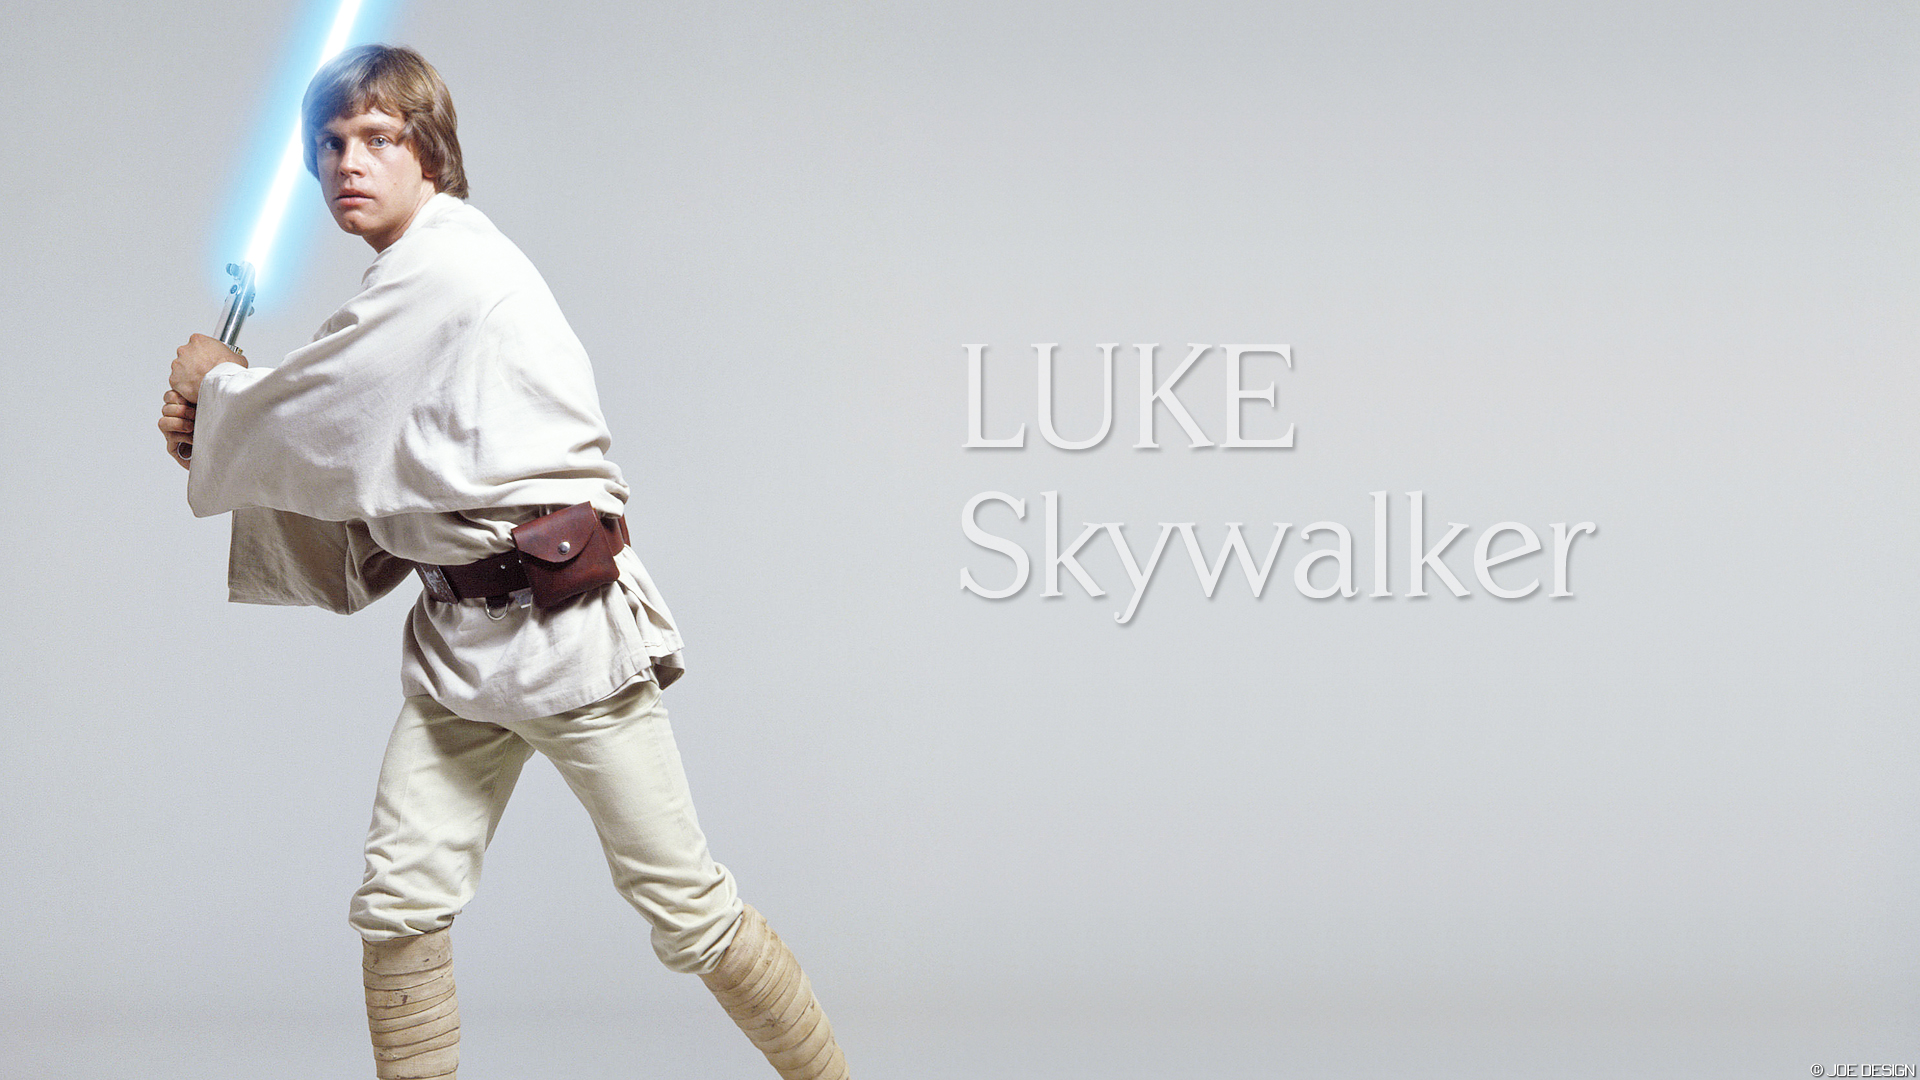 Luke Skywalker by Joe88Design 1920x1080